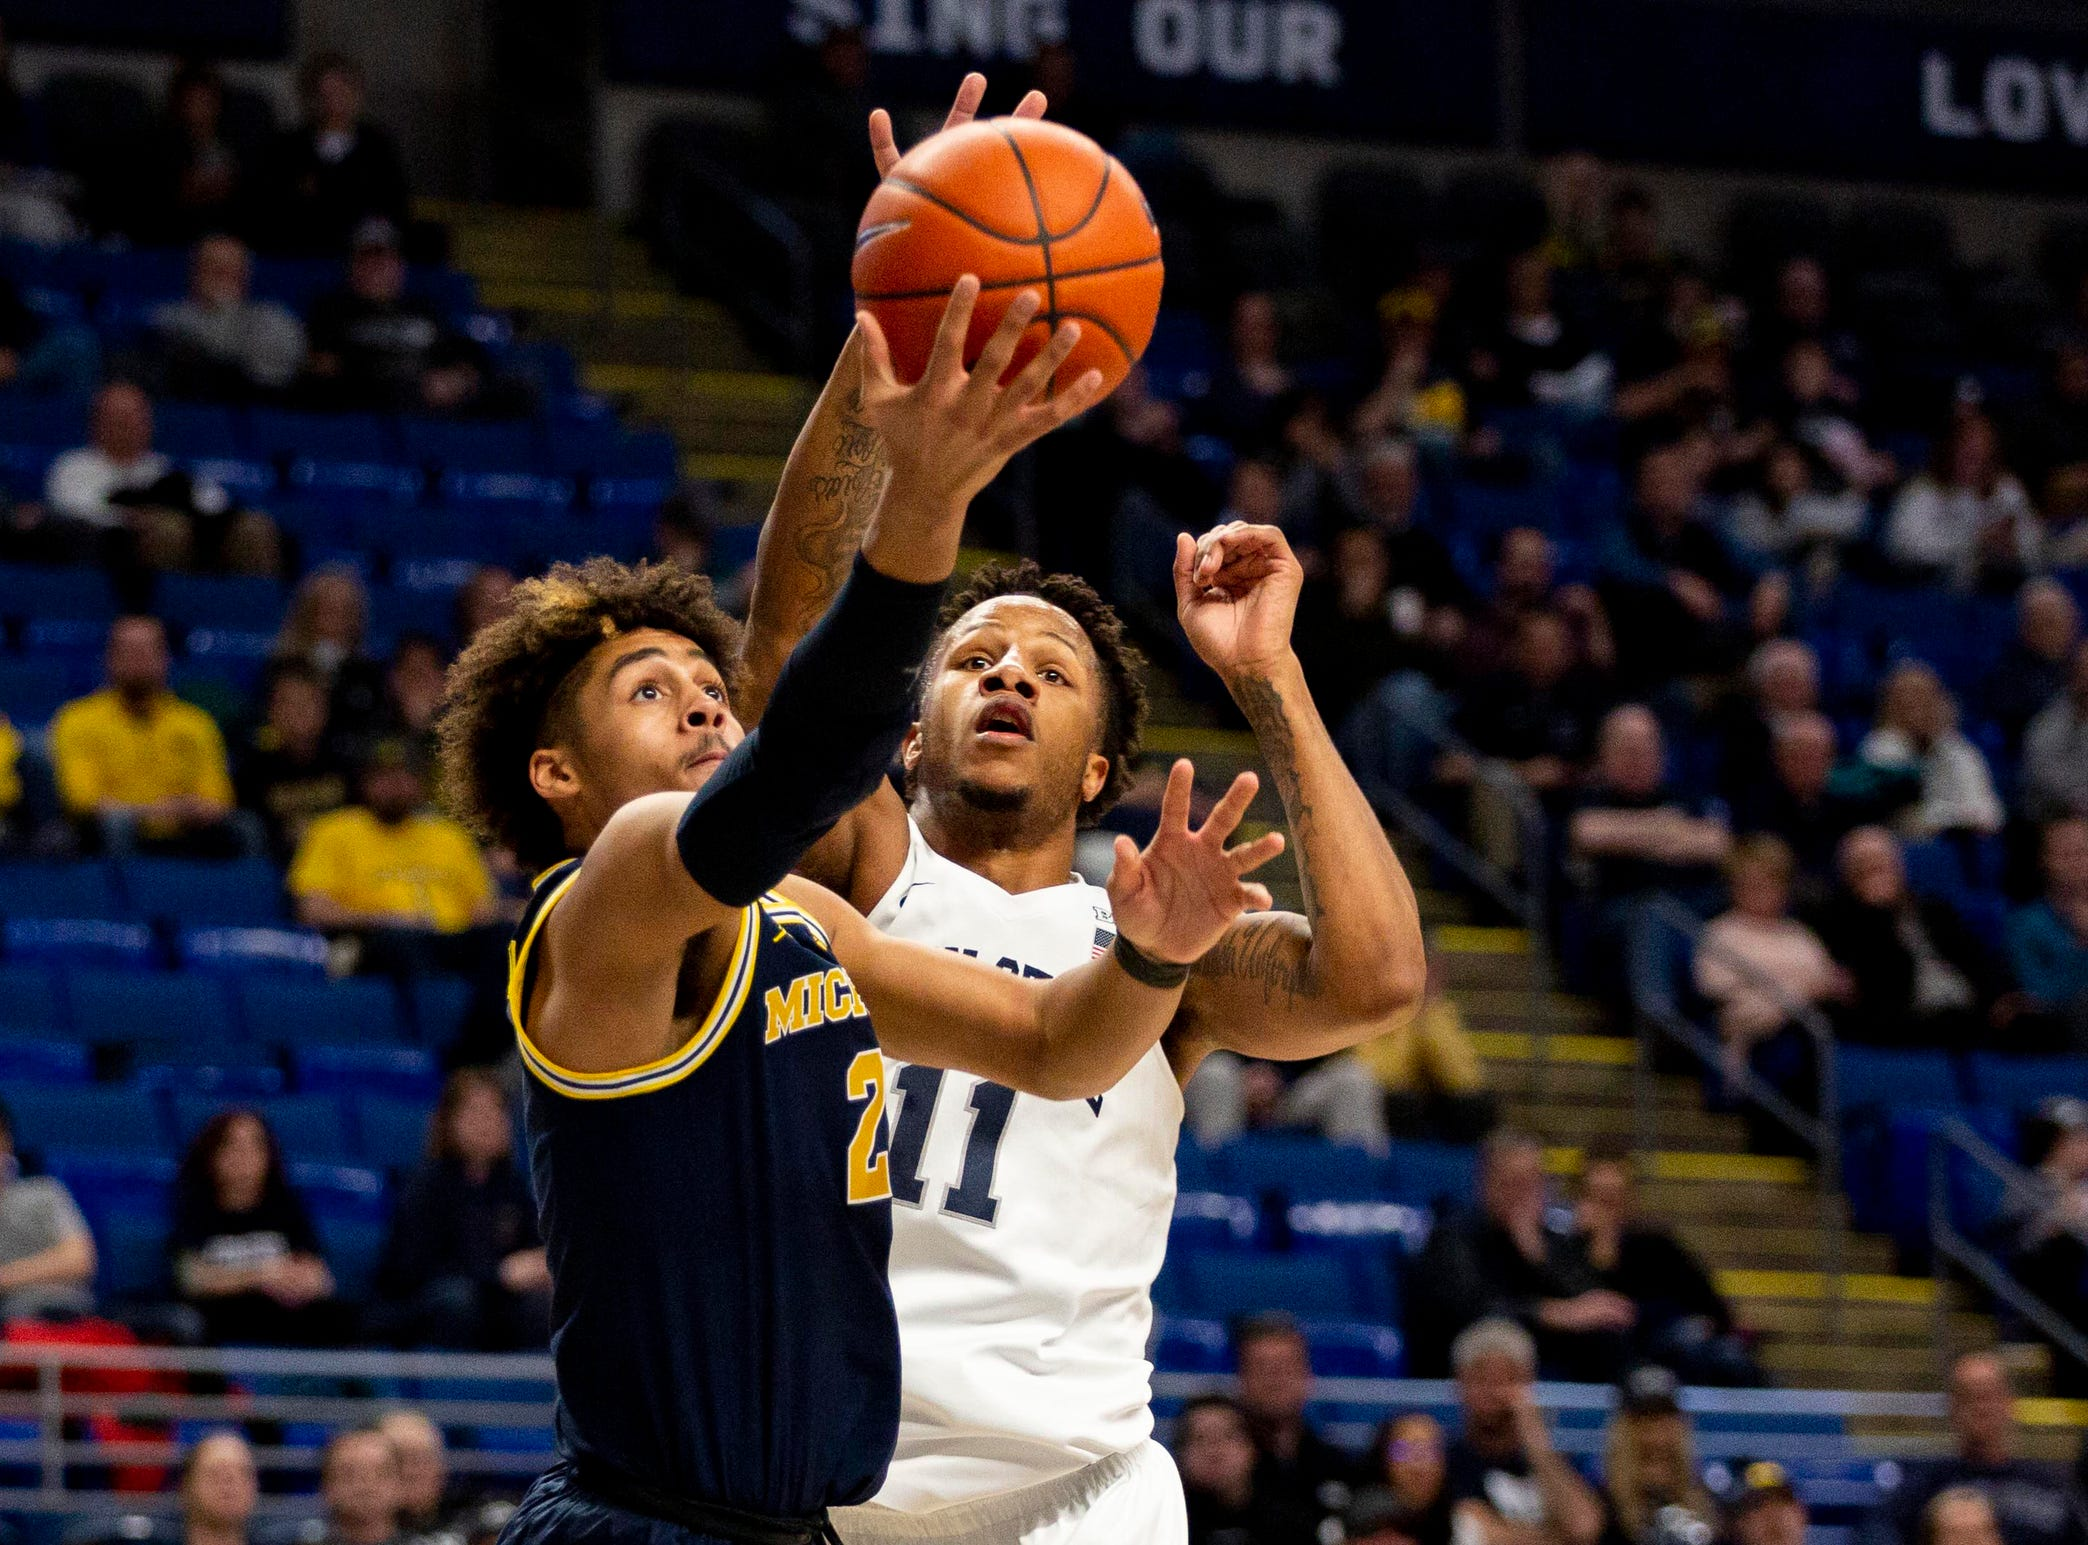 Michigan guard Jordan Poole shoots the ball past Penn State forward Lamar Stevens during the second half of U-M's 75-69 loss on Tuesday, Feb. 12, 2019, in State College, Pa.